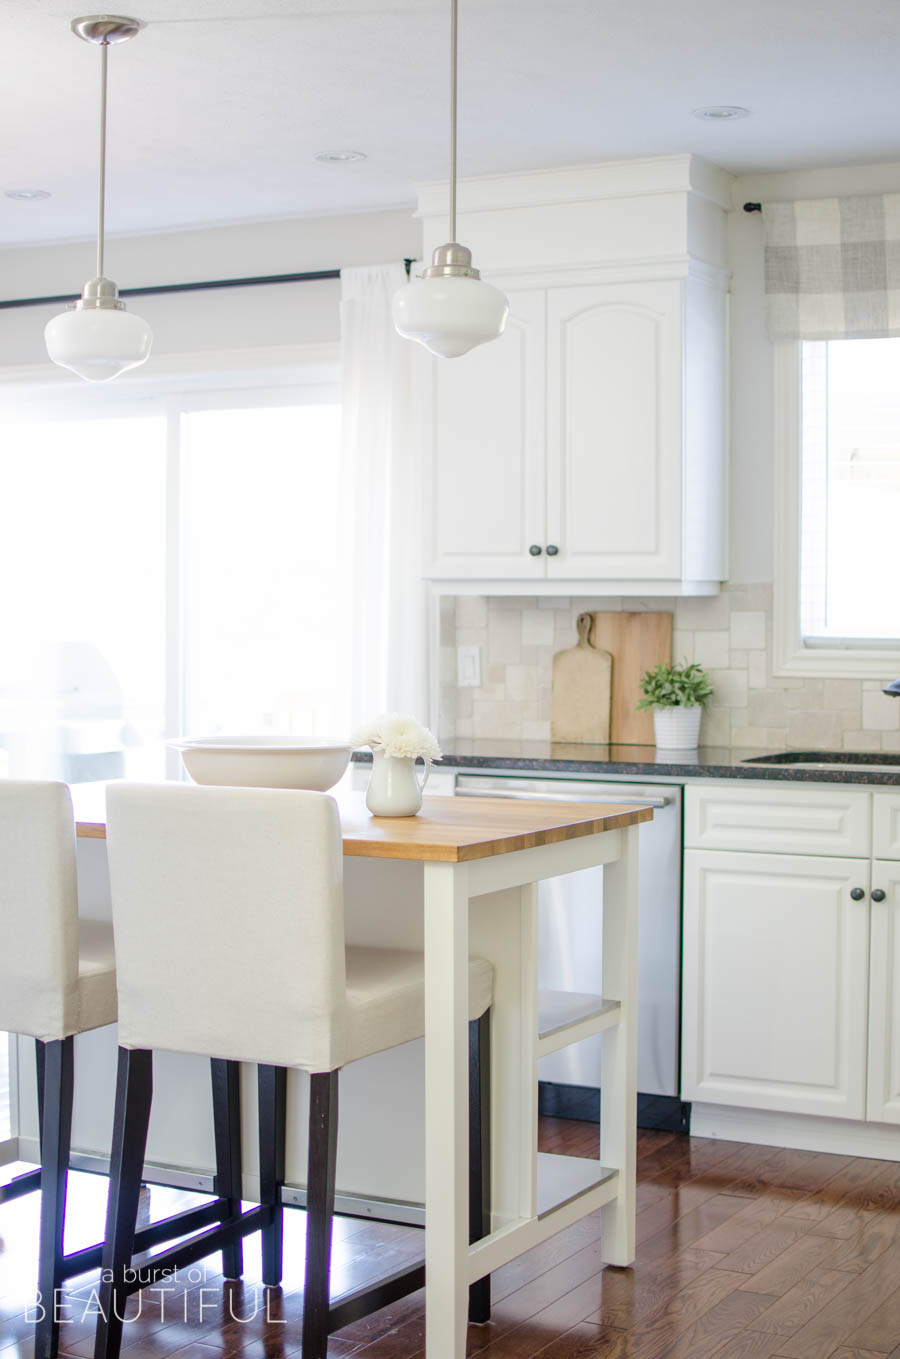 This simple farmhouse kitchen is the heart of this busy family's home. White cabinets, black granite counters and natural wood elements add plenty of texture and charm to this bright and airy space.